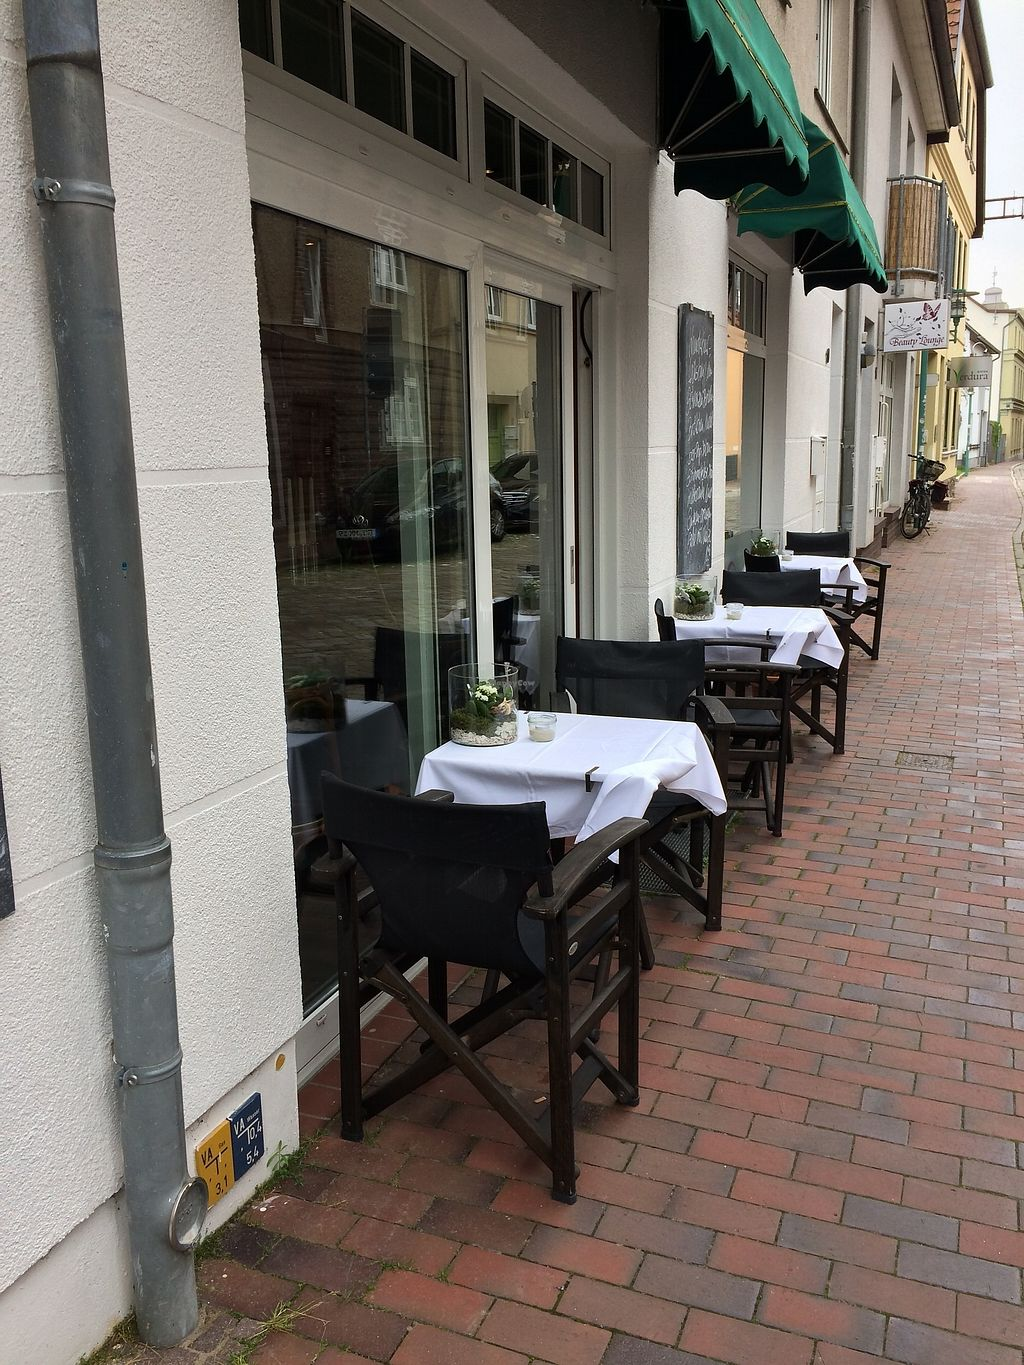 """Photo of WunderBar  by <a href=""""/members/profile/hhvegan"""">hhvegan</a> <br/>Nice outdoor seating <br/> August 22, 2017  - <a href='/contact/abuse/image/98847/295430'>Report</a>"""